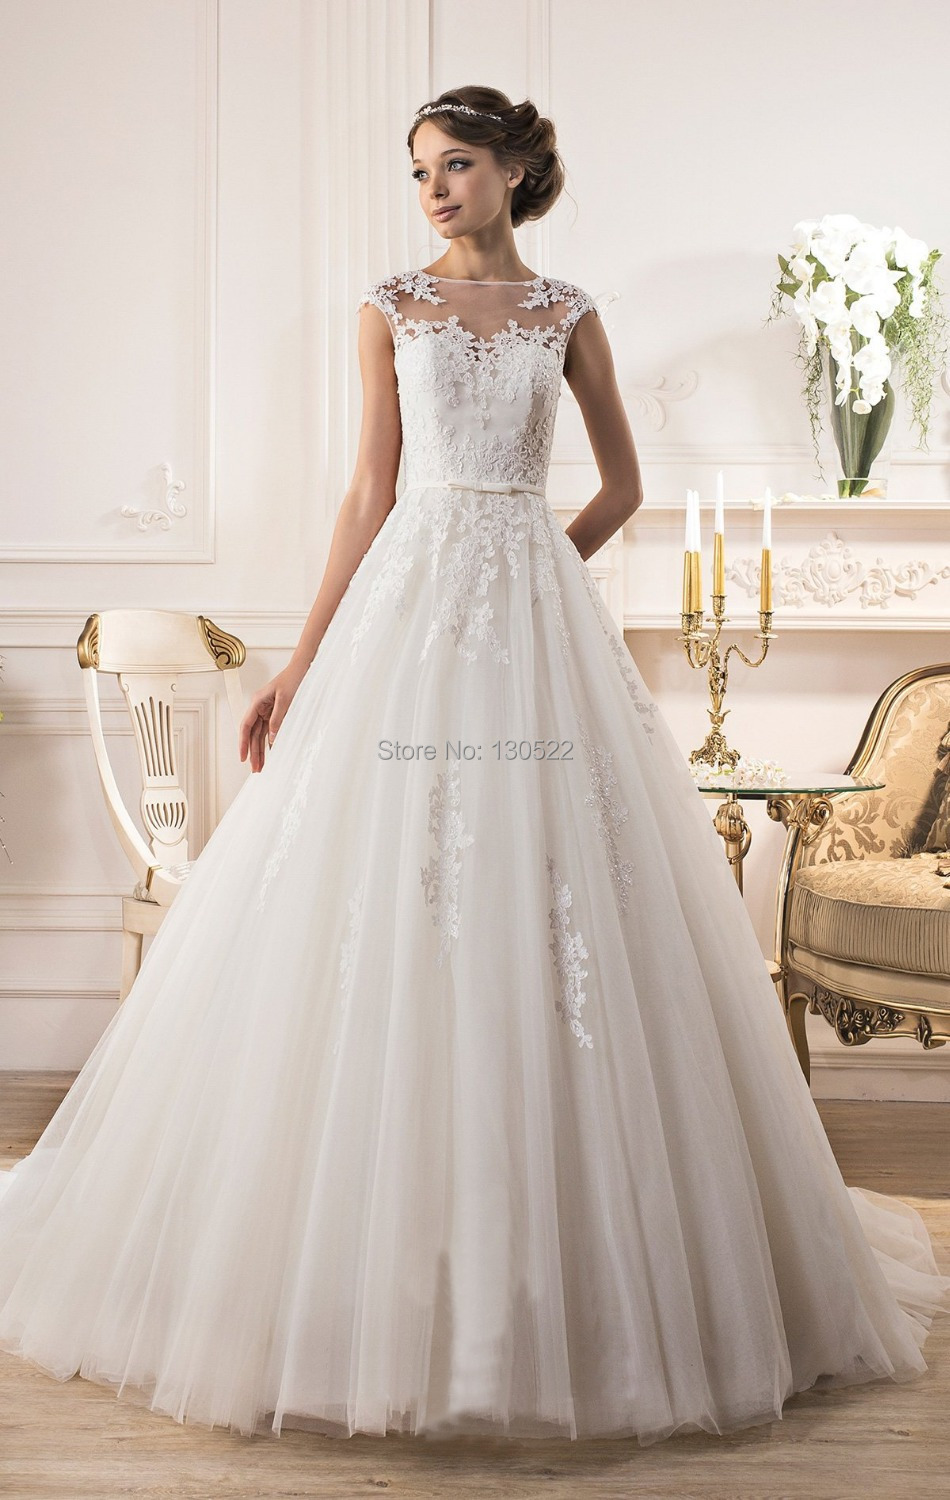 Lace top wedding dress with cap sleeve